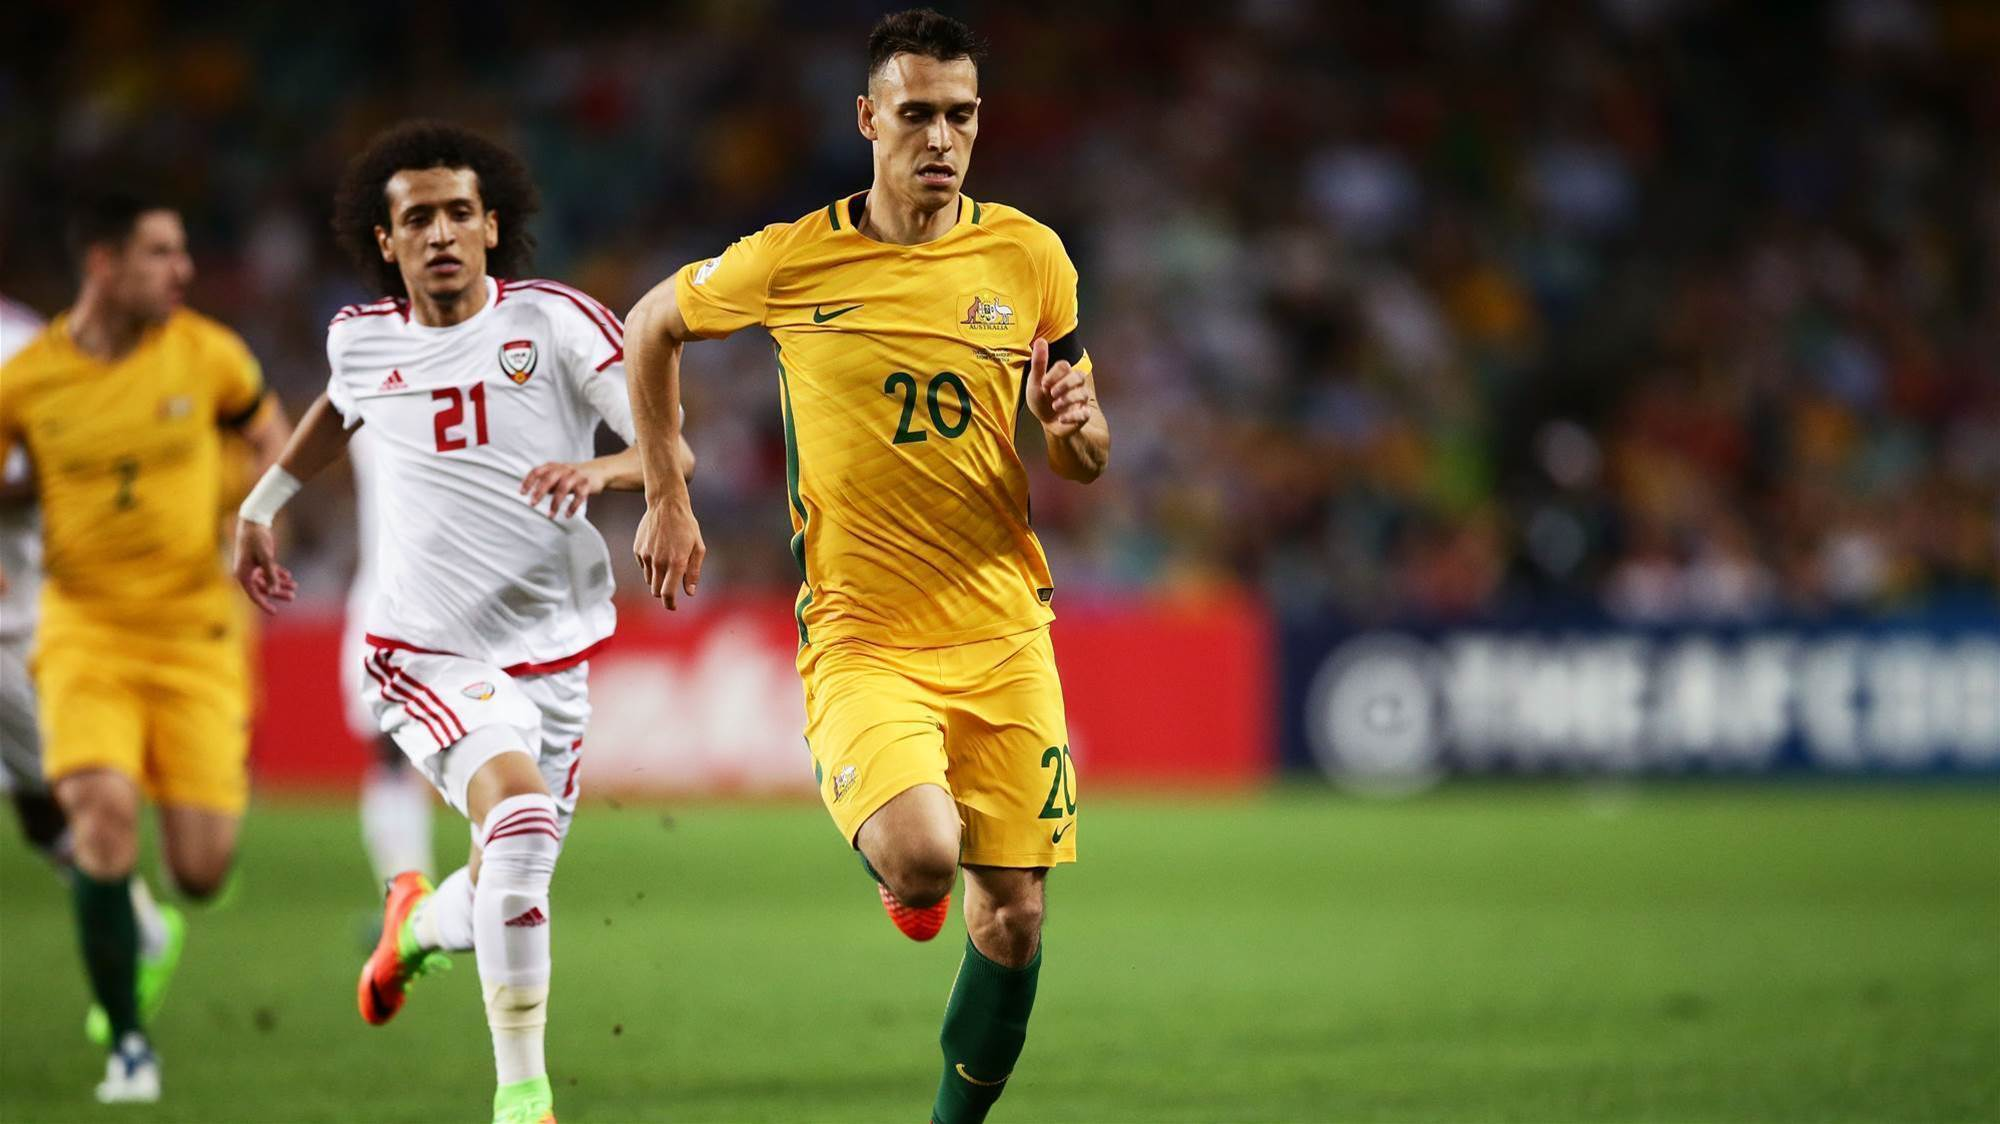 Sainsbury: Why Ange's system works